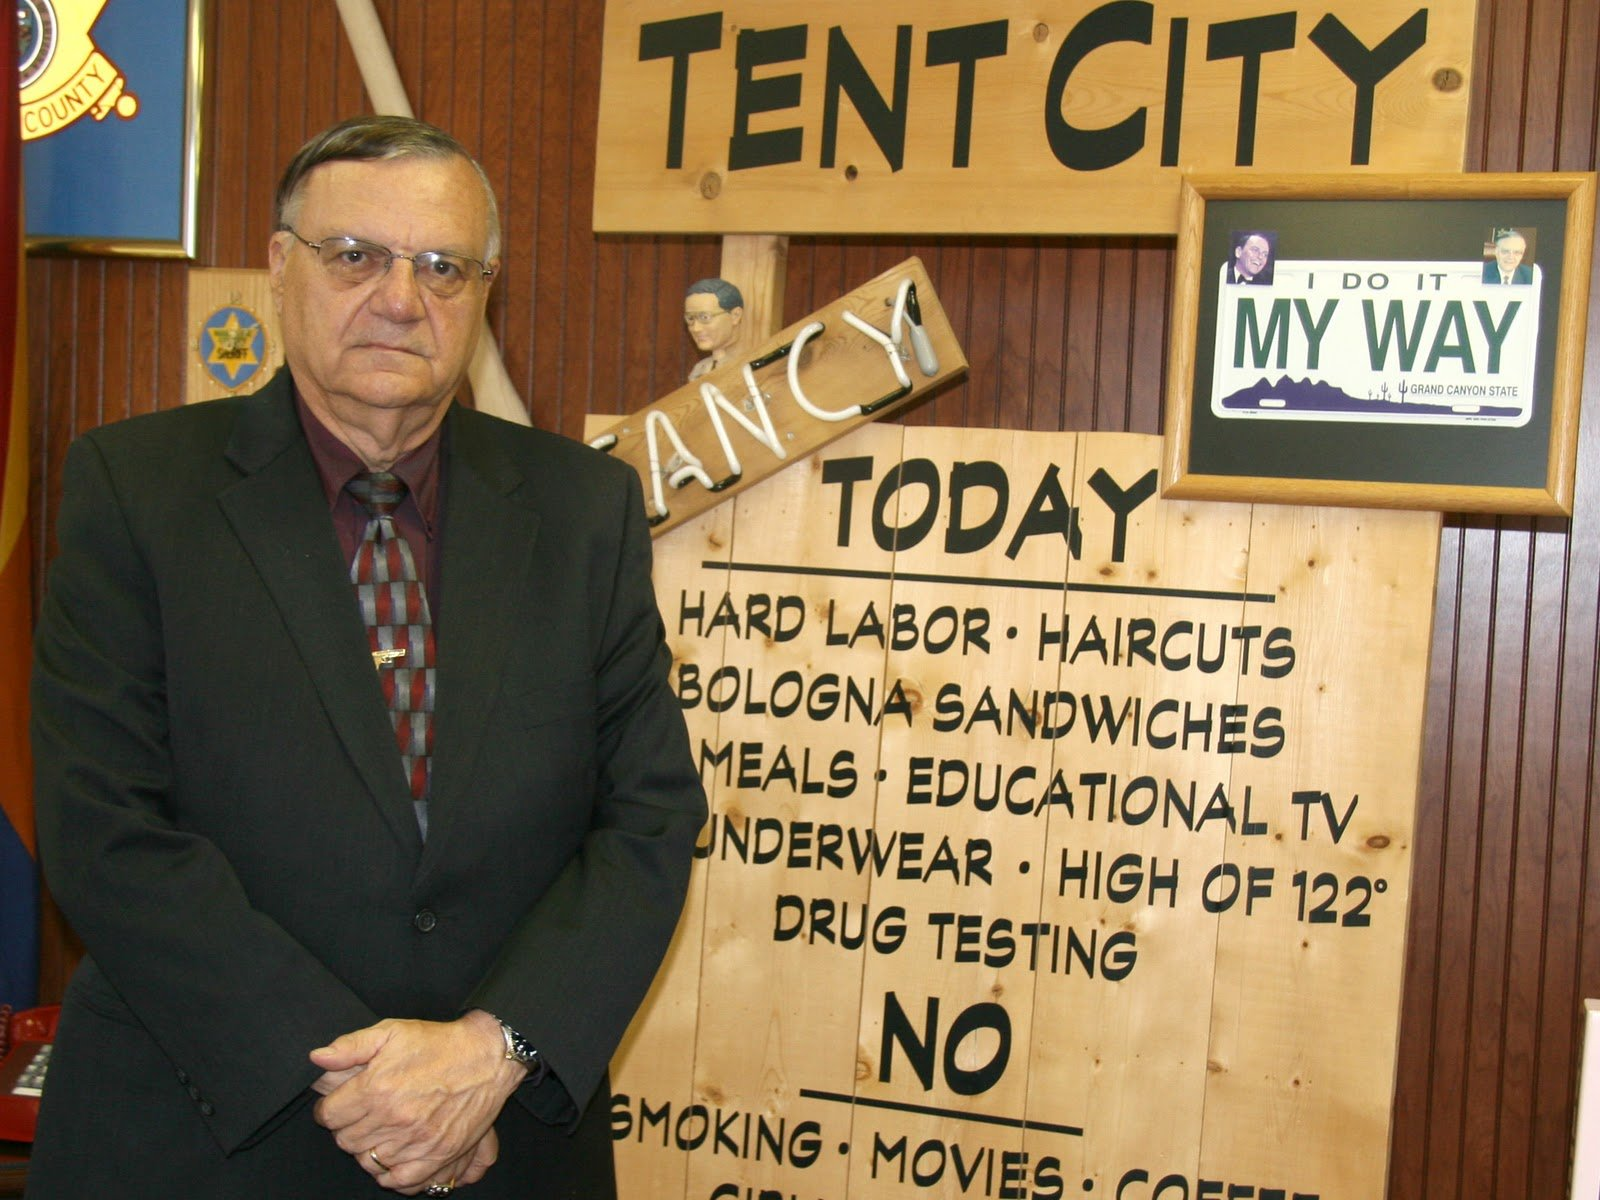 Establishing Tent City Jail was one of Arpaio's top three priorities when he first took office in 1993. (Source: KPHO/KTVK file)